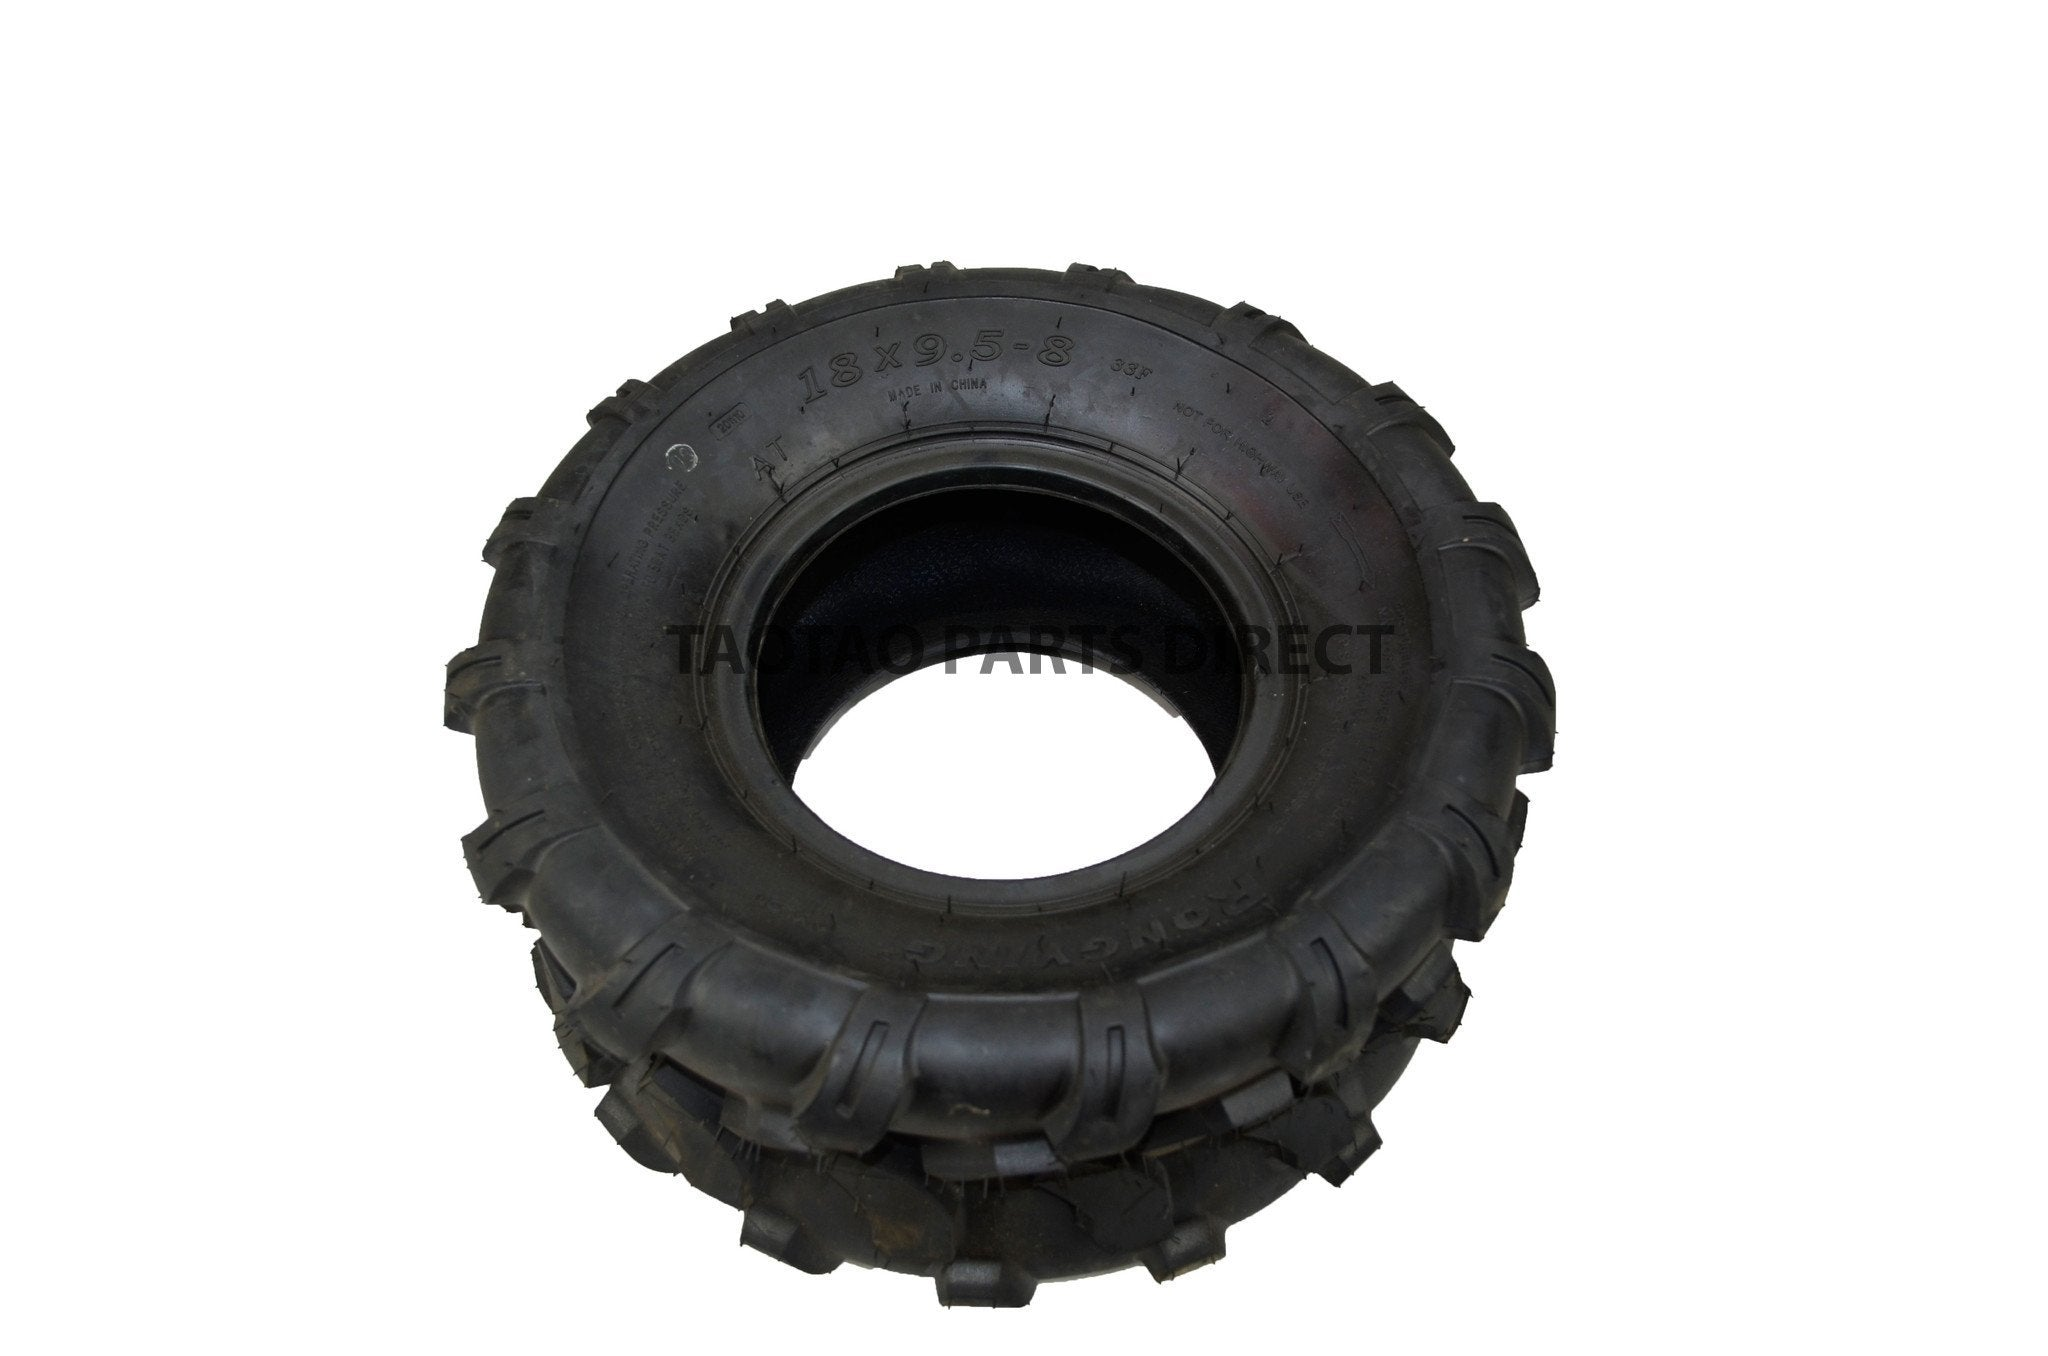 18x9.5-8 Tire - TaoTao Parts Direct